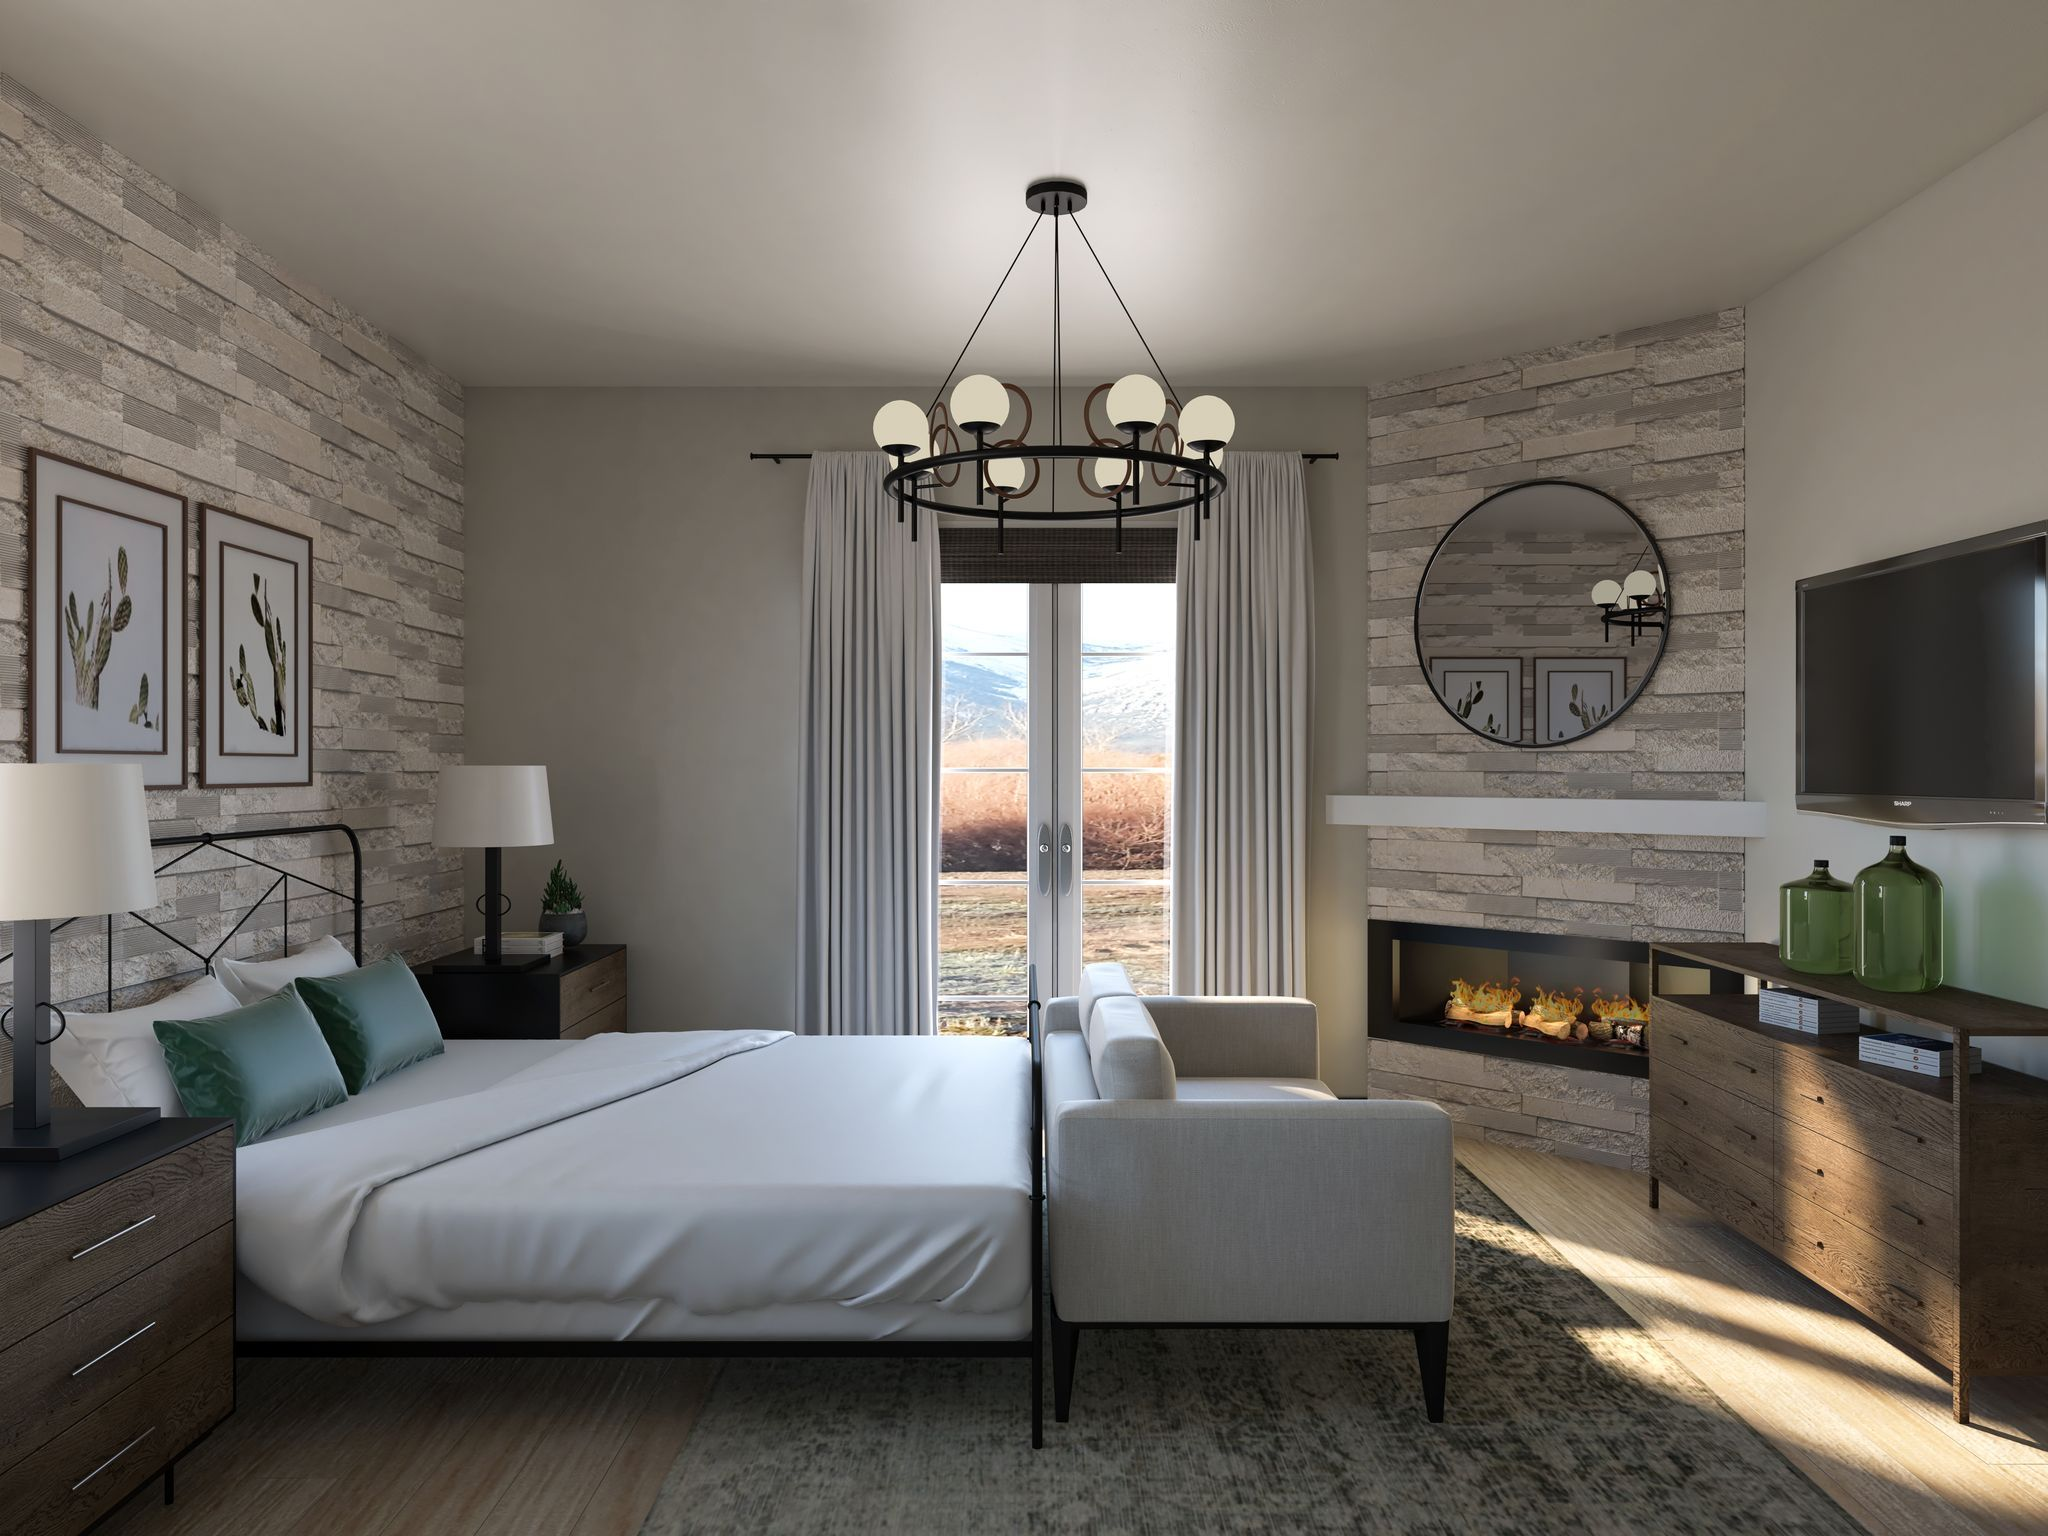 Bedroom featured in the Residence 1 By Santa Ynez Valley Construction in Reno, NV